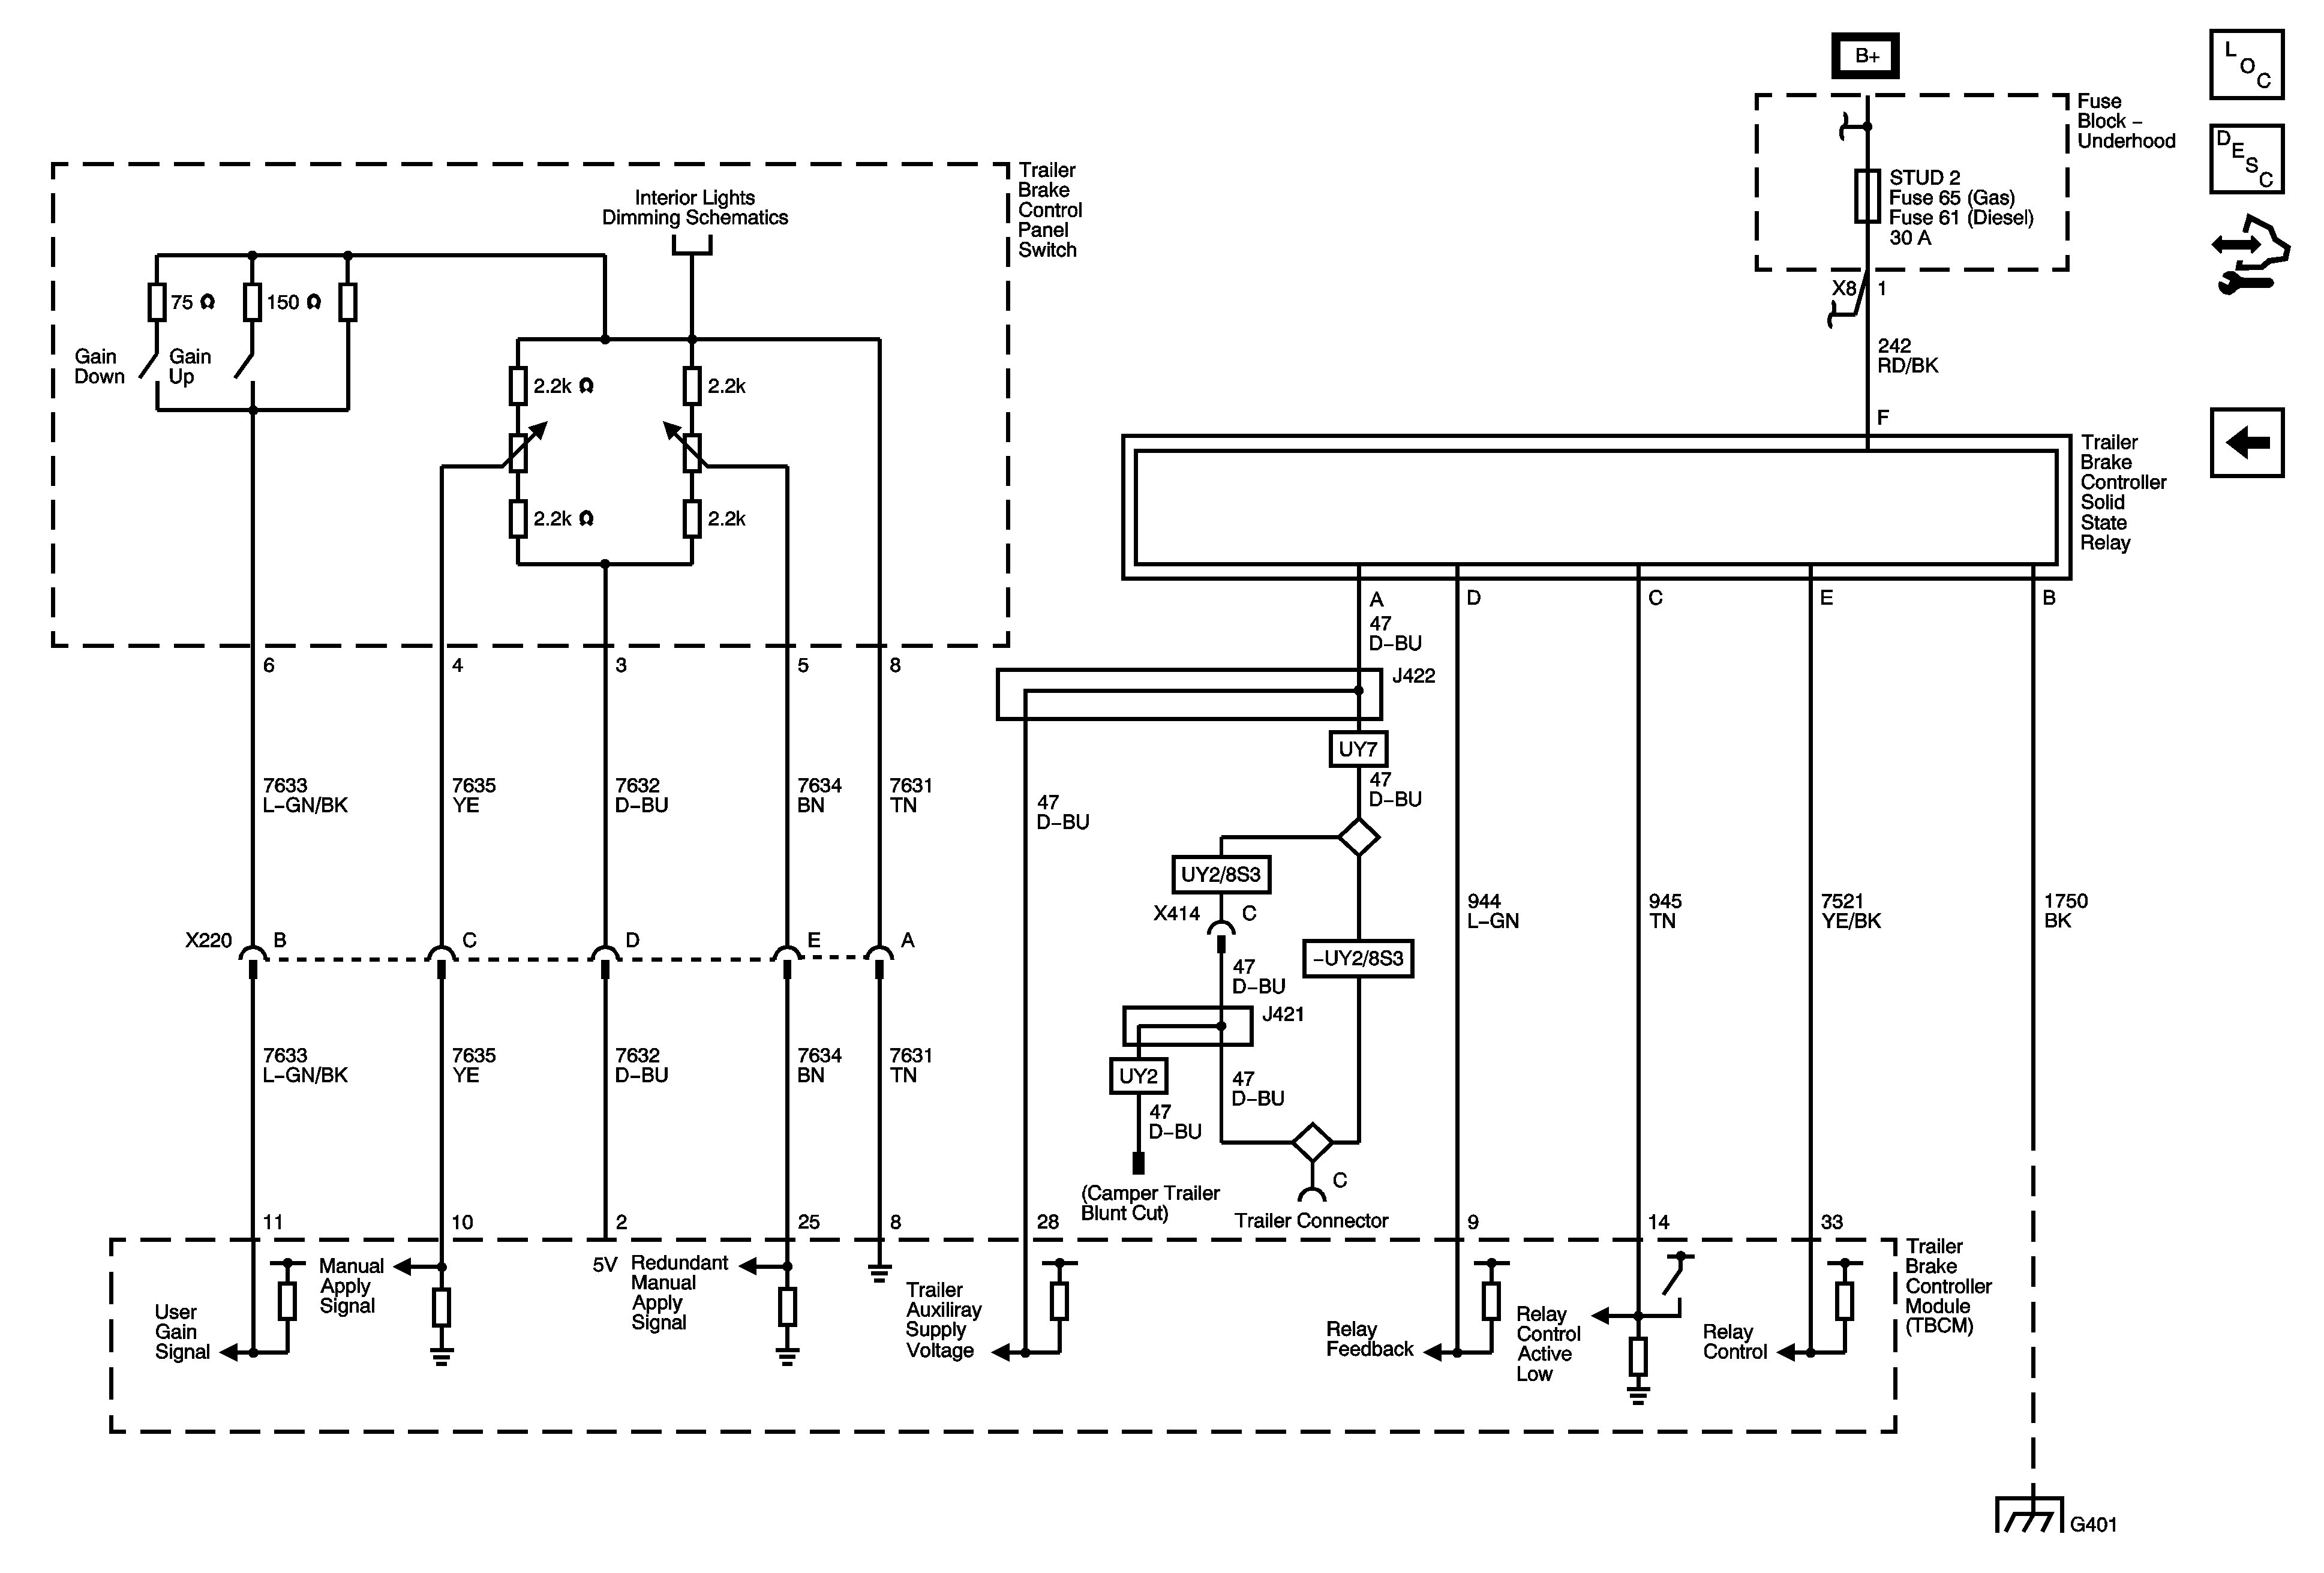 2011 Gmc Trailer Wiring Diagram - Today Wiring Diagram - Ram 1500 Trailer Wiring Diagram